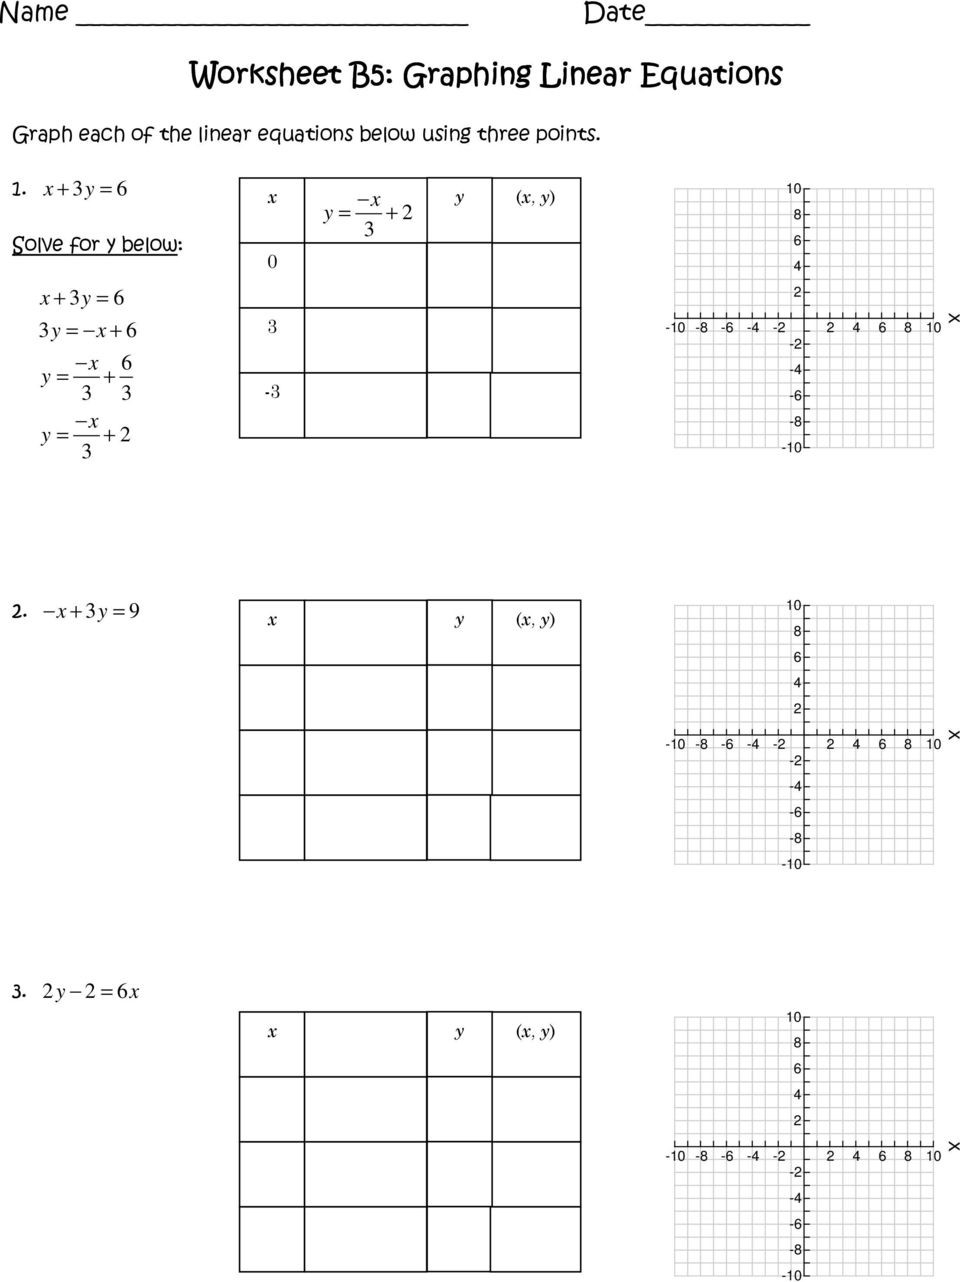 Graphing Linear Equations Worksheet Pdf